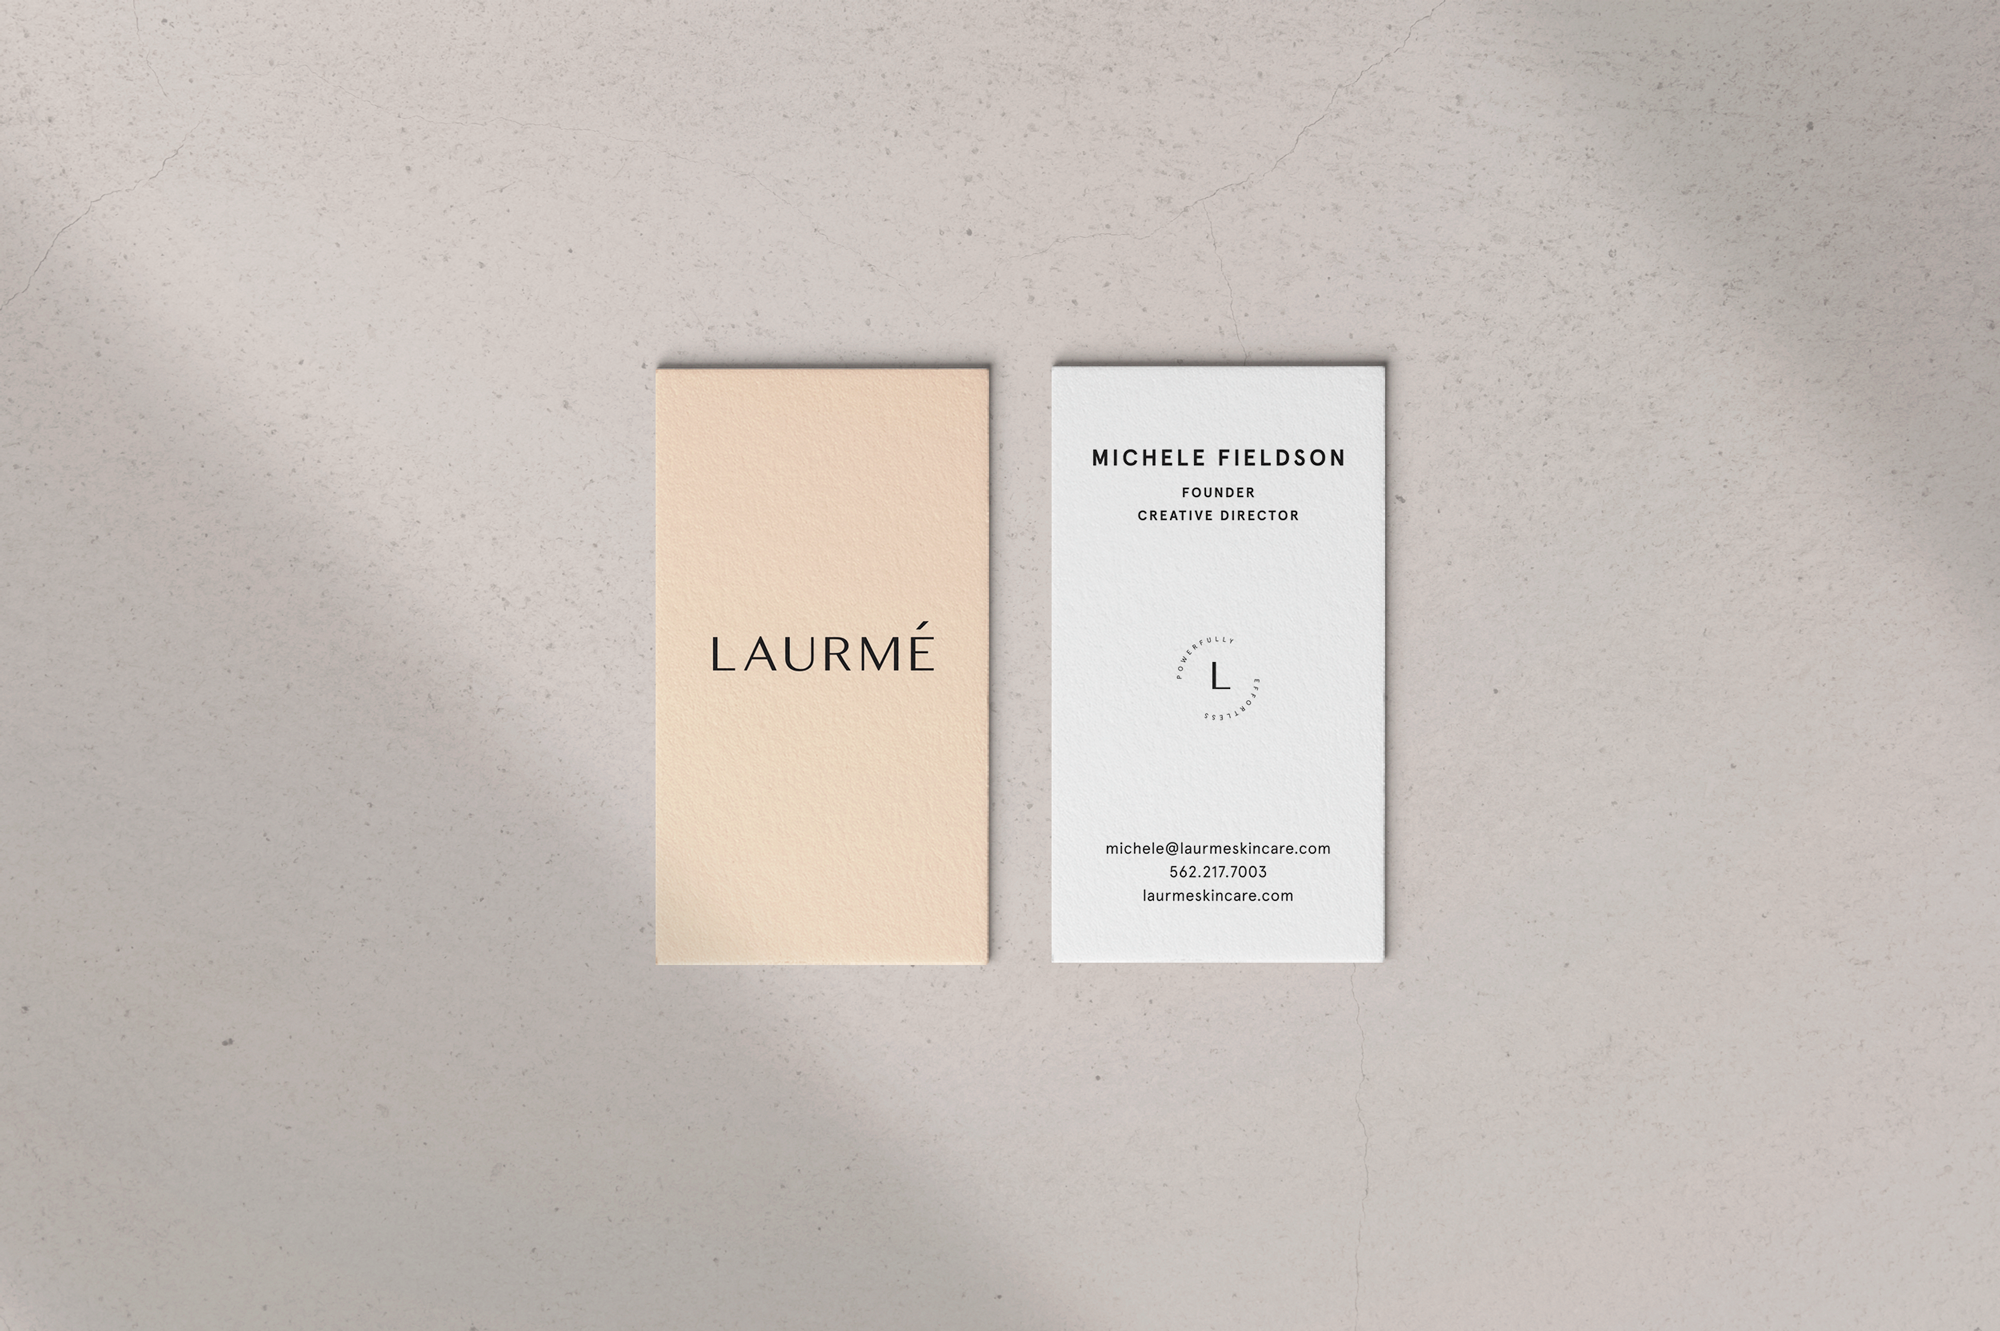 laurme-business-card.png